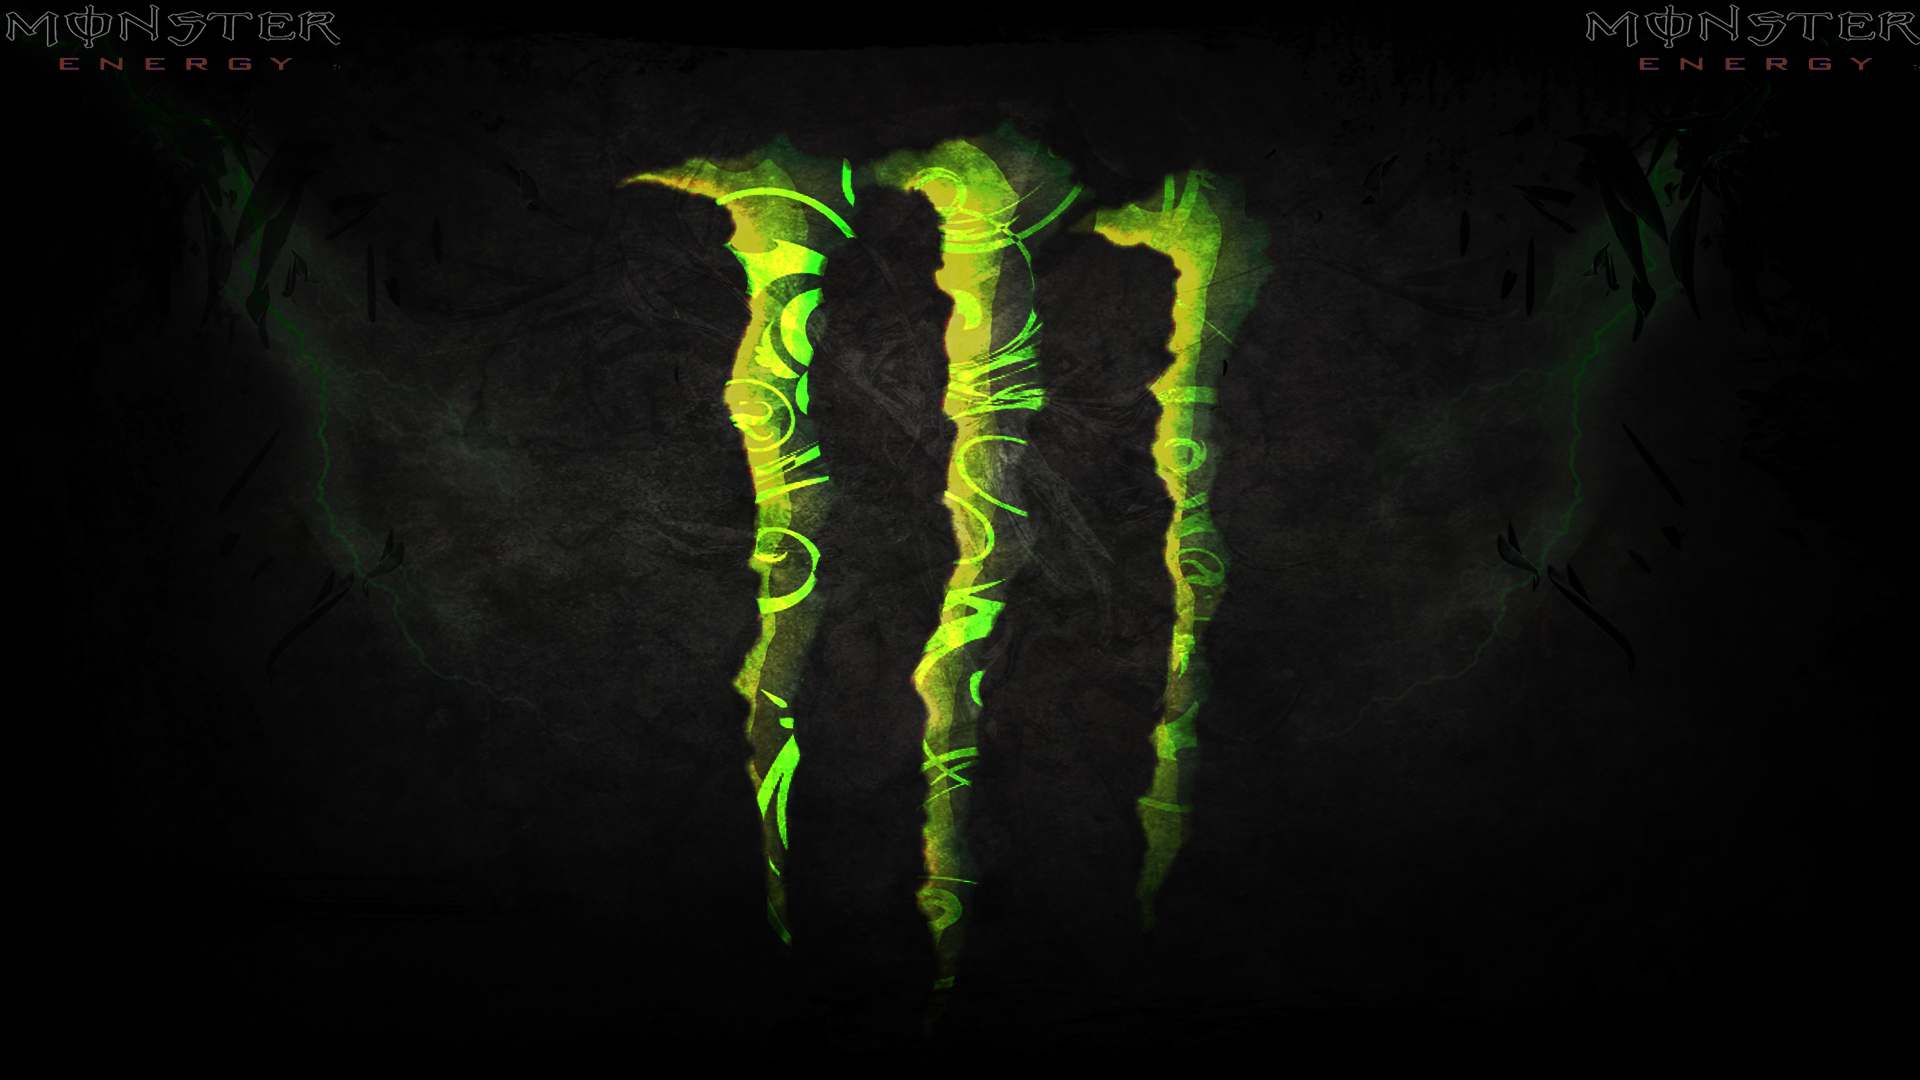 Monster Energy Wide Wallpaper 5758 2240 Wallpaper Wallpaper Screen 1920x1080